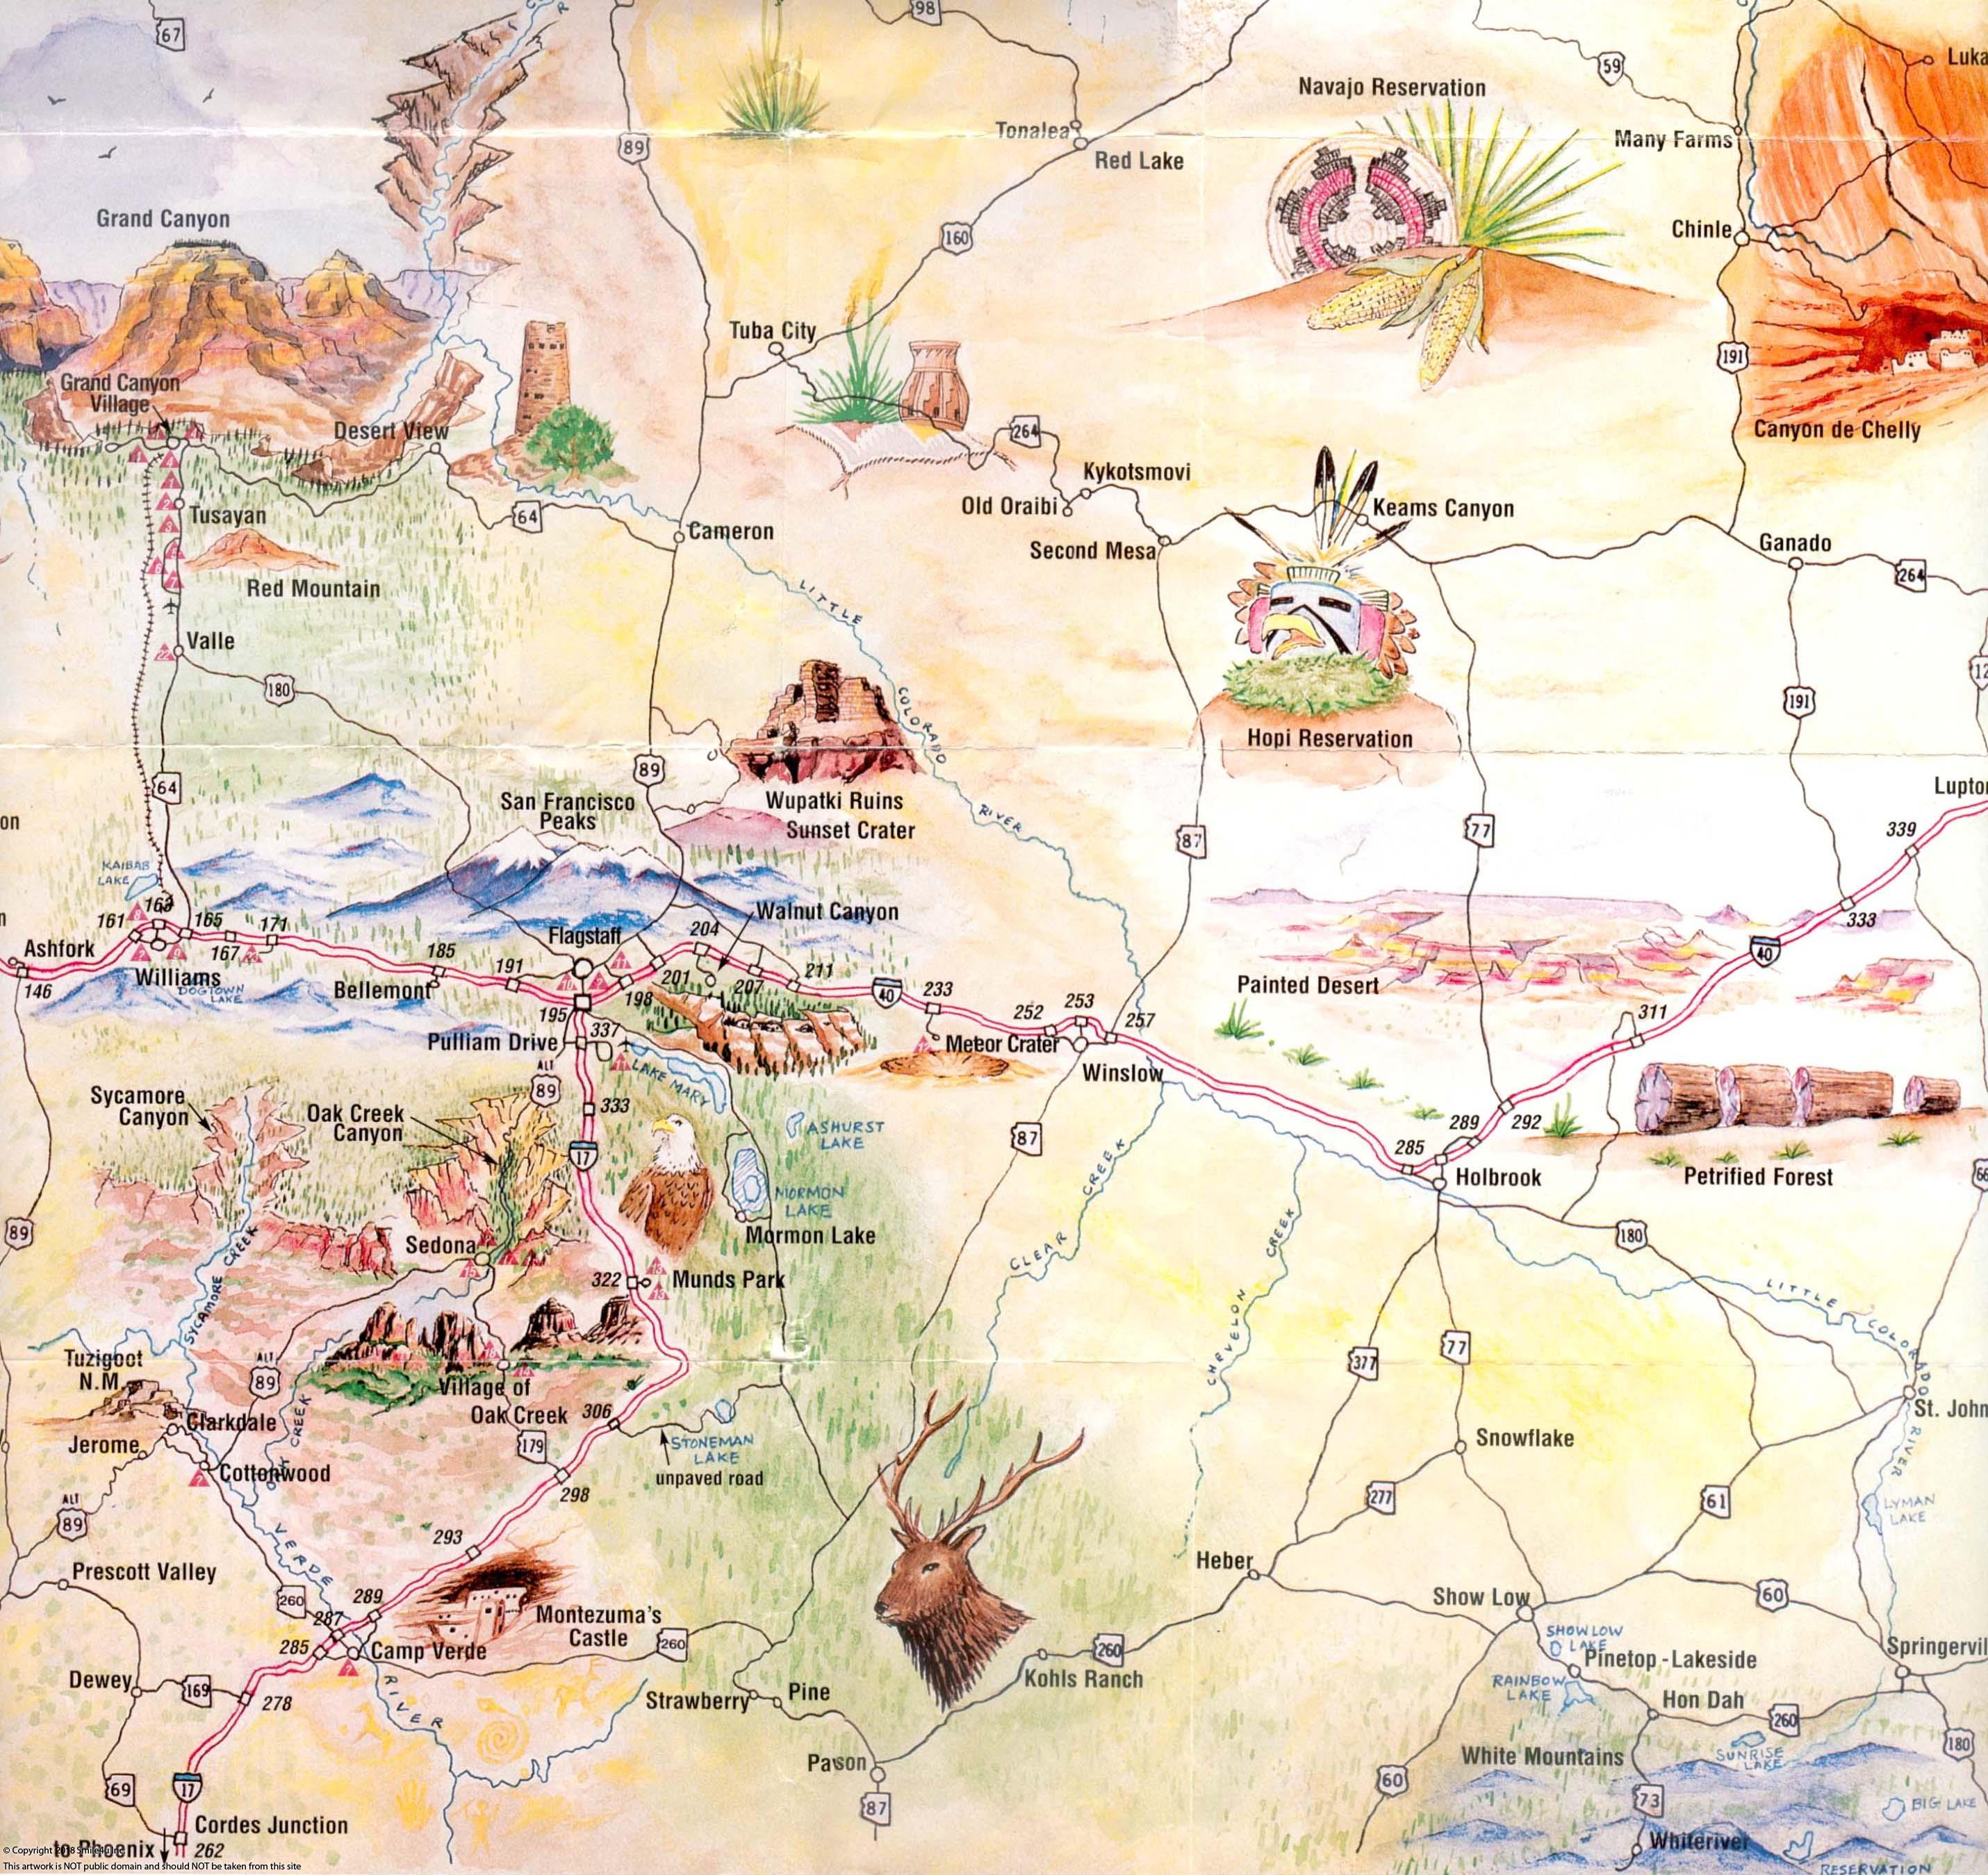 734719_watermarked_Navajo County Attraction Map.jpg